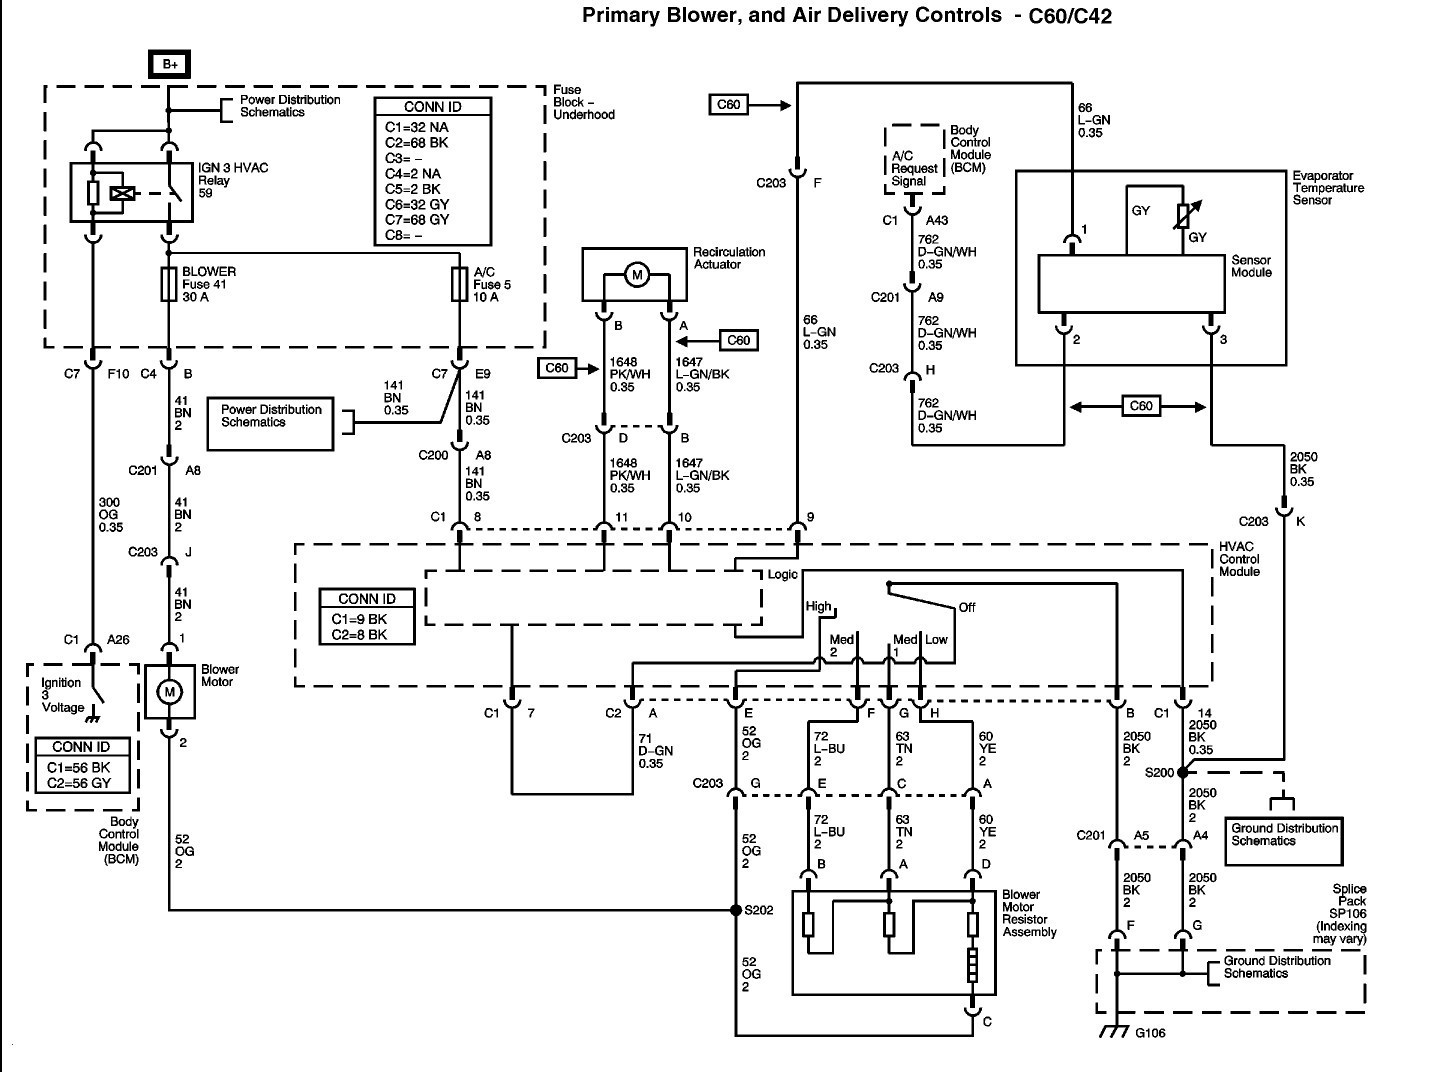 blower motor resistor wiring diagram earth crust with lithosphere fan wire library